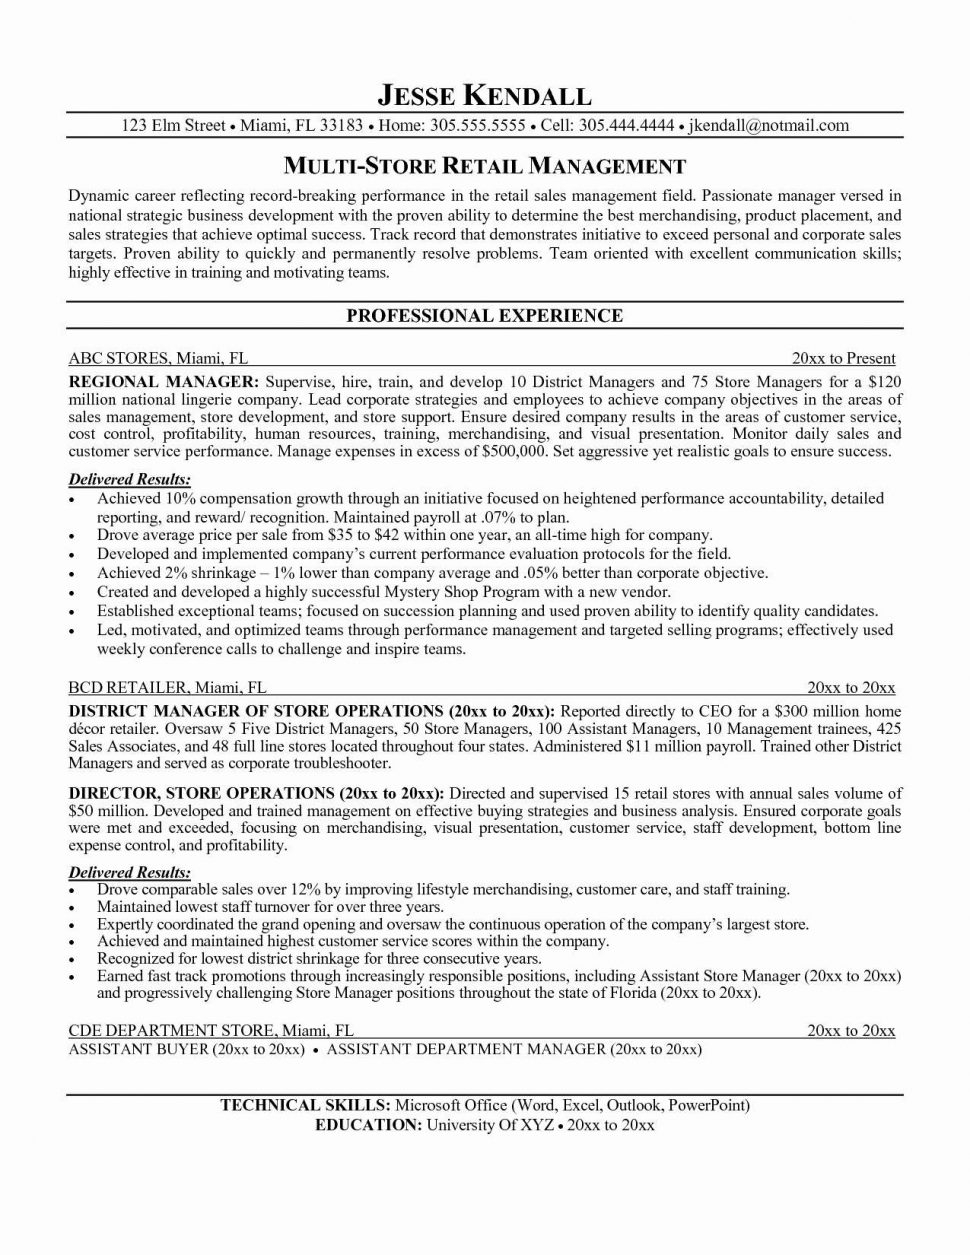 Fbi Resume format - Resume Resume Template for Electrician Resumes Project Tradesman